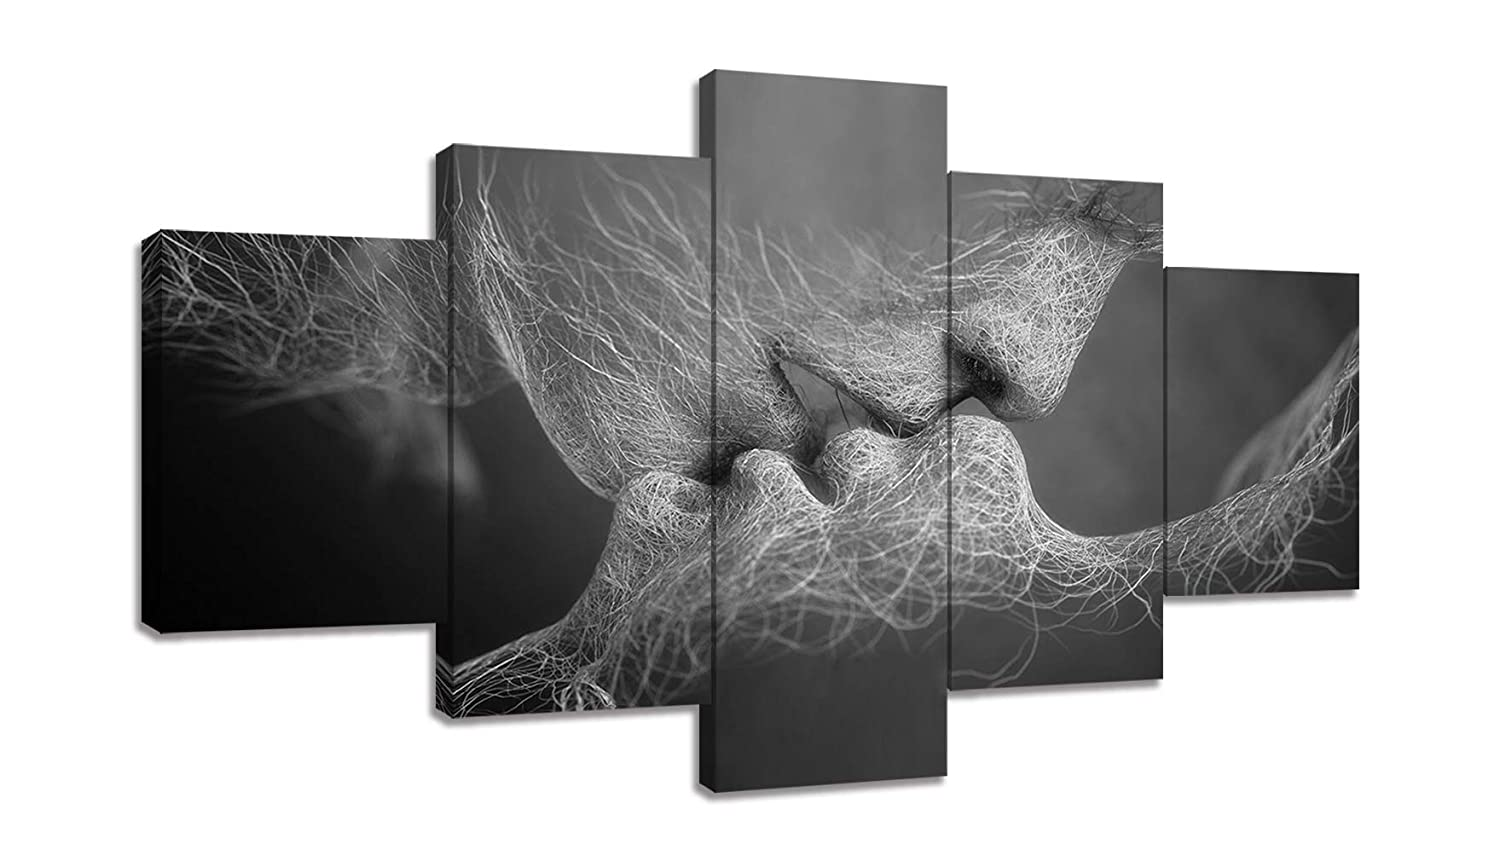 Urttiiyy 5 Panel Black and White Love Kissing Canvas Prints Wall Art Adam and Eve Home Decor Pictures for Living Room Poster Painting Framed Artwork Ready to Hang